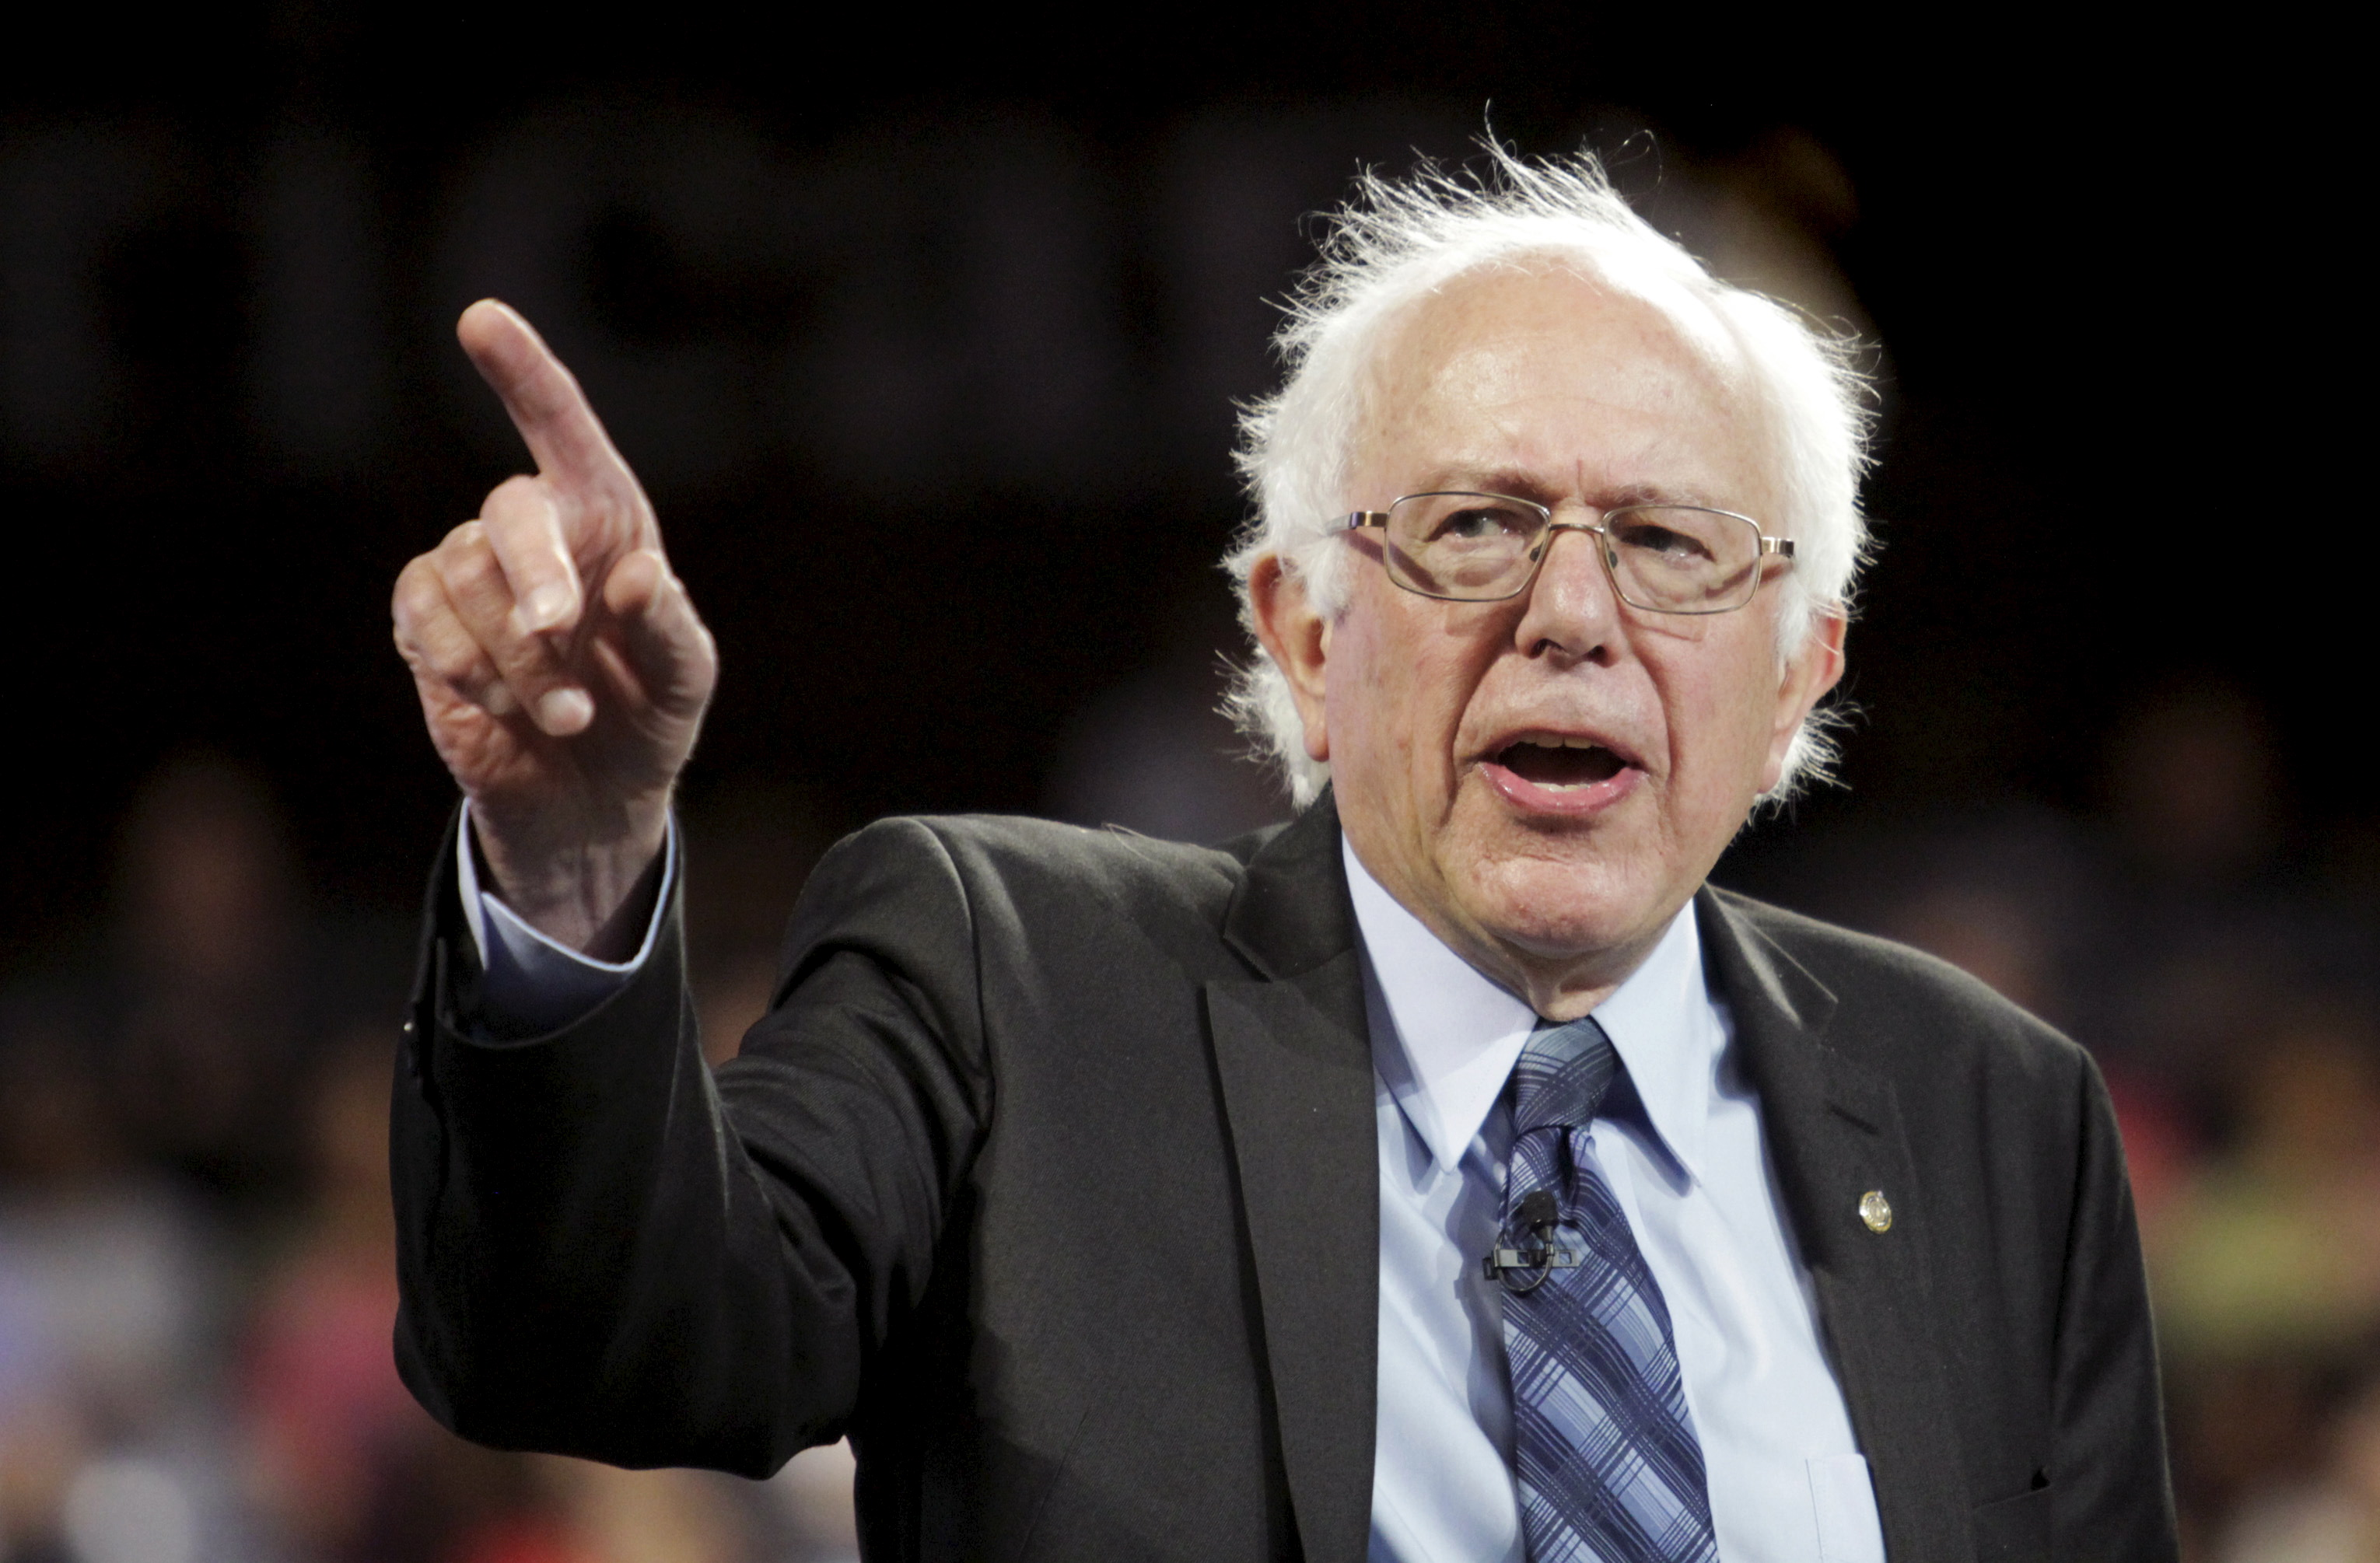 U.S. Democratic presidential candidate Sen. Sanders delivers an address to Liberty University students in Lynchburg